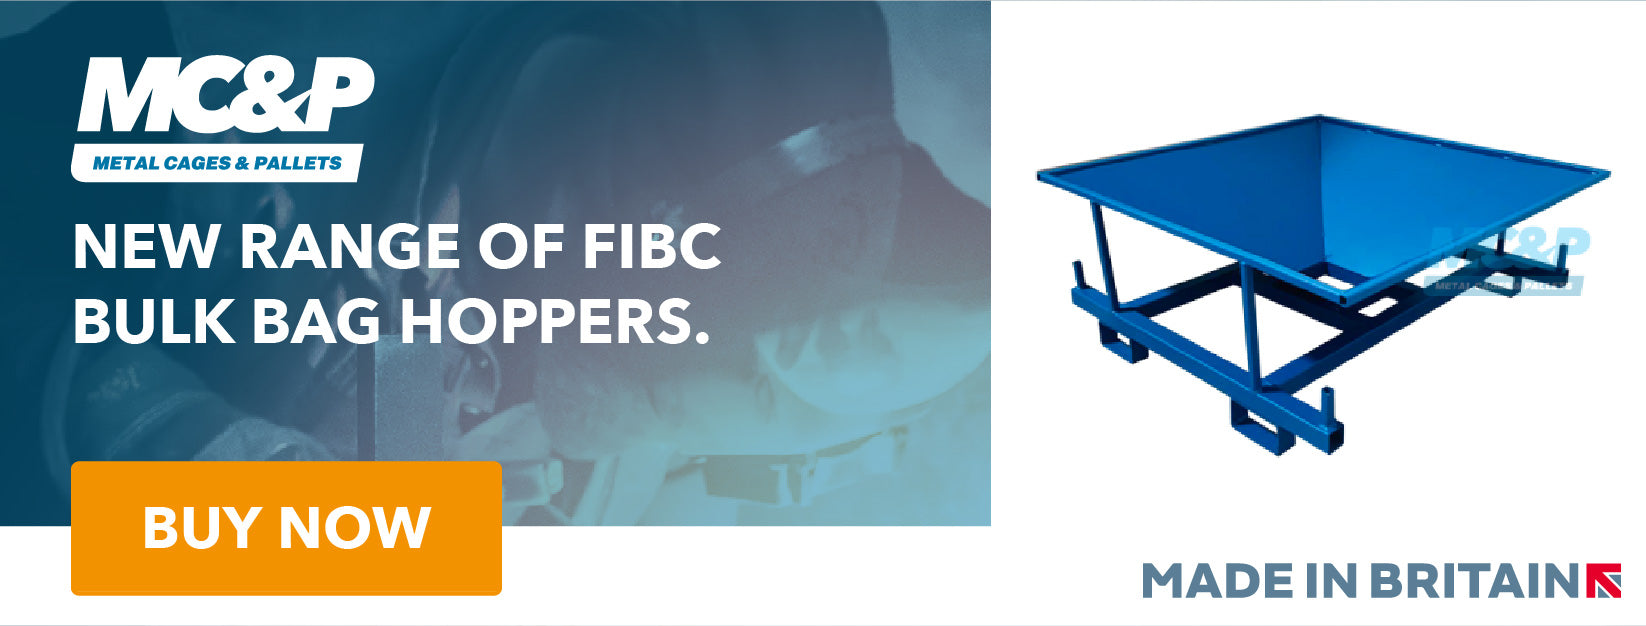 FIBC Bulk Bag/Tonne Bag Hopper Range Now Available From £328+Vat. Buy Now.